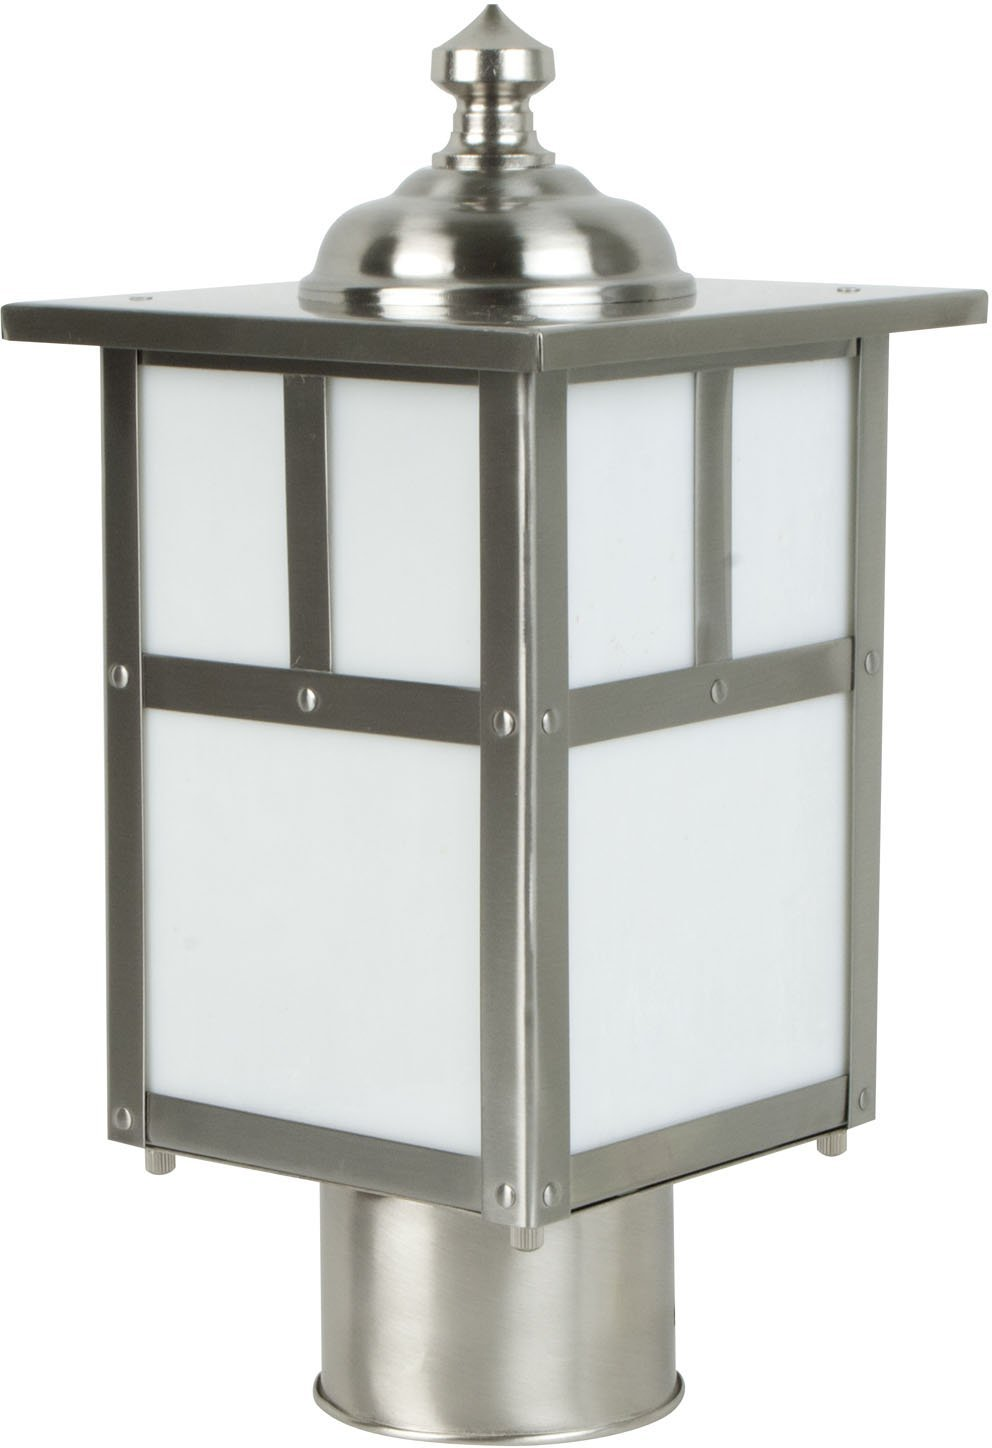 Craftmade Z1845-56 Post Mount Light with Frosted Glass Shades, Nickel Finish